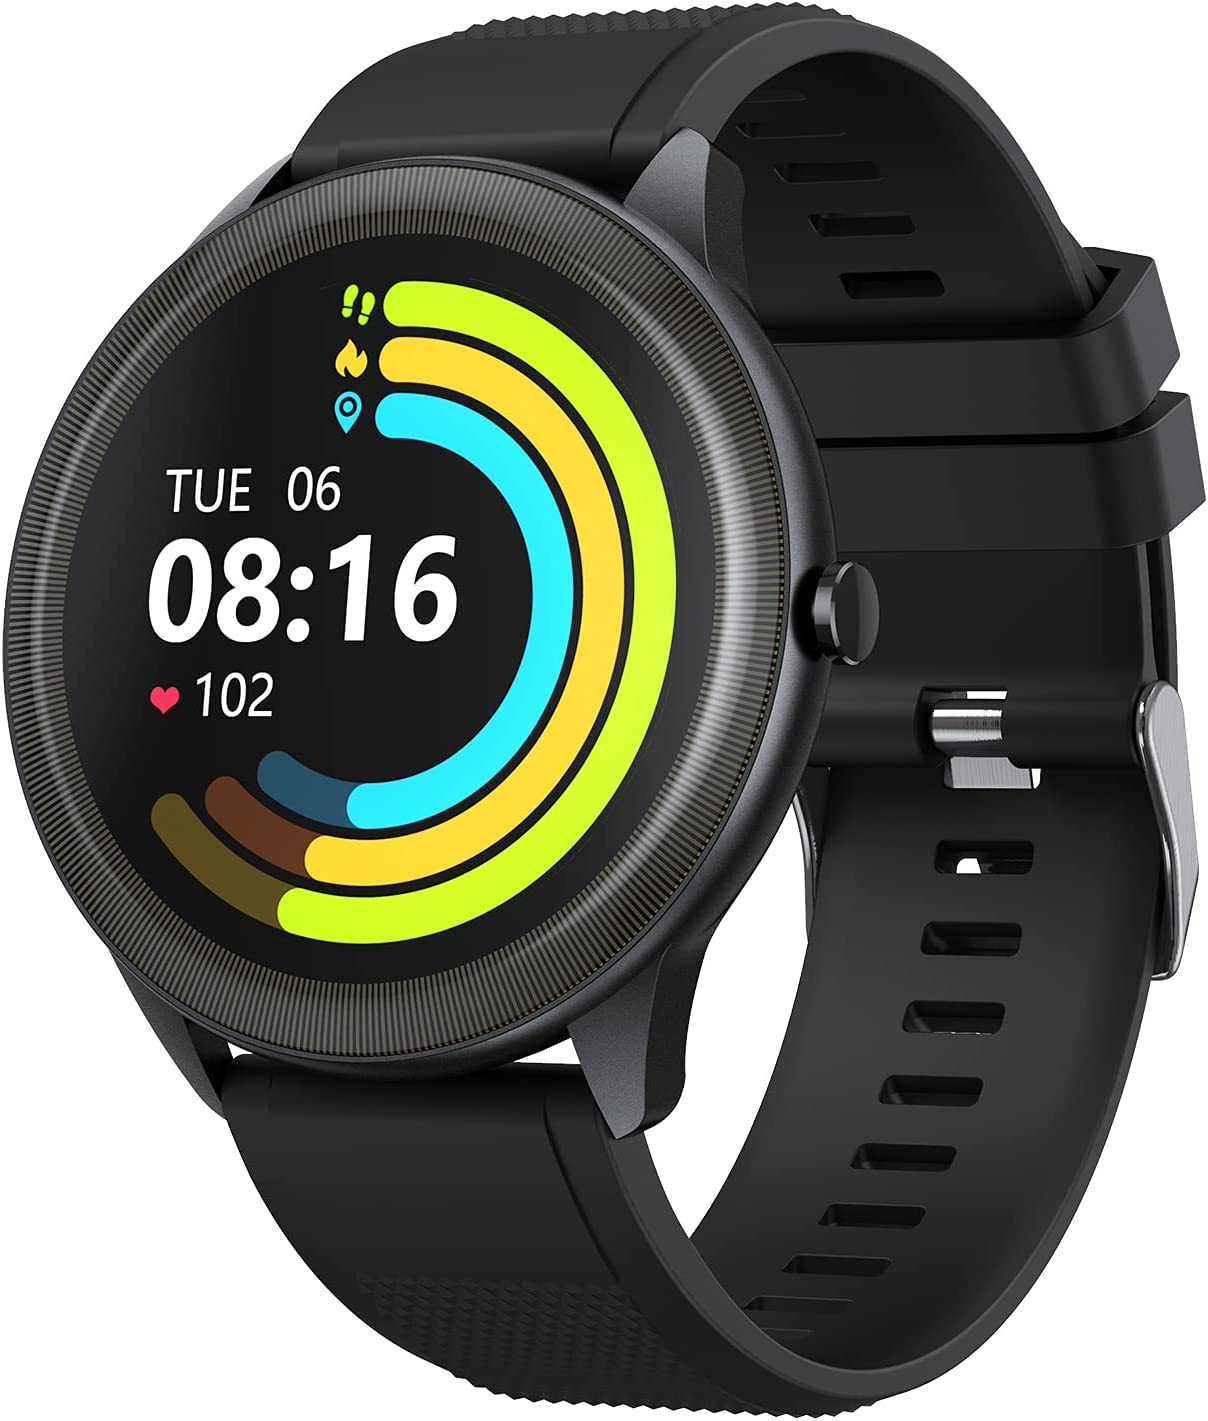 Vigorun Smart Watch for Android Phones Fitness Tracker with Heart Rate Monitor Step Counter Sleep Tracker, Music Control, IP68 Waterproof Smart Watch for Men Women, Compatible with iPhone Samsung